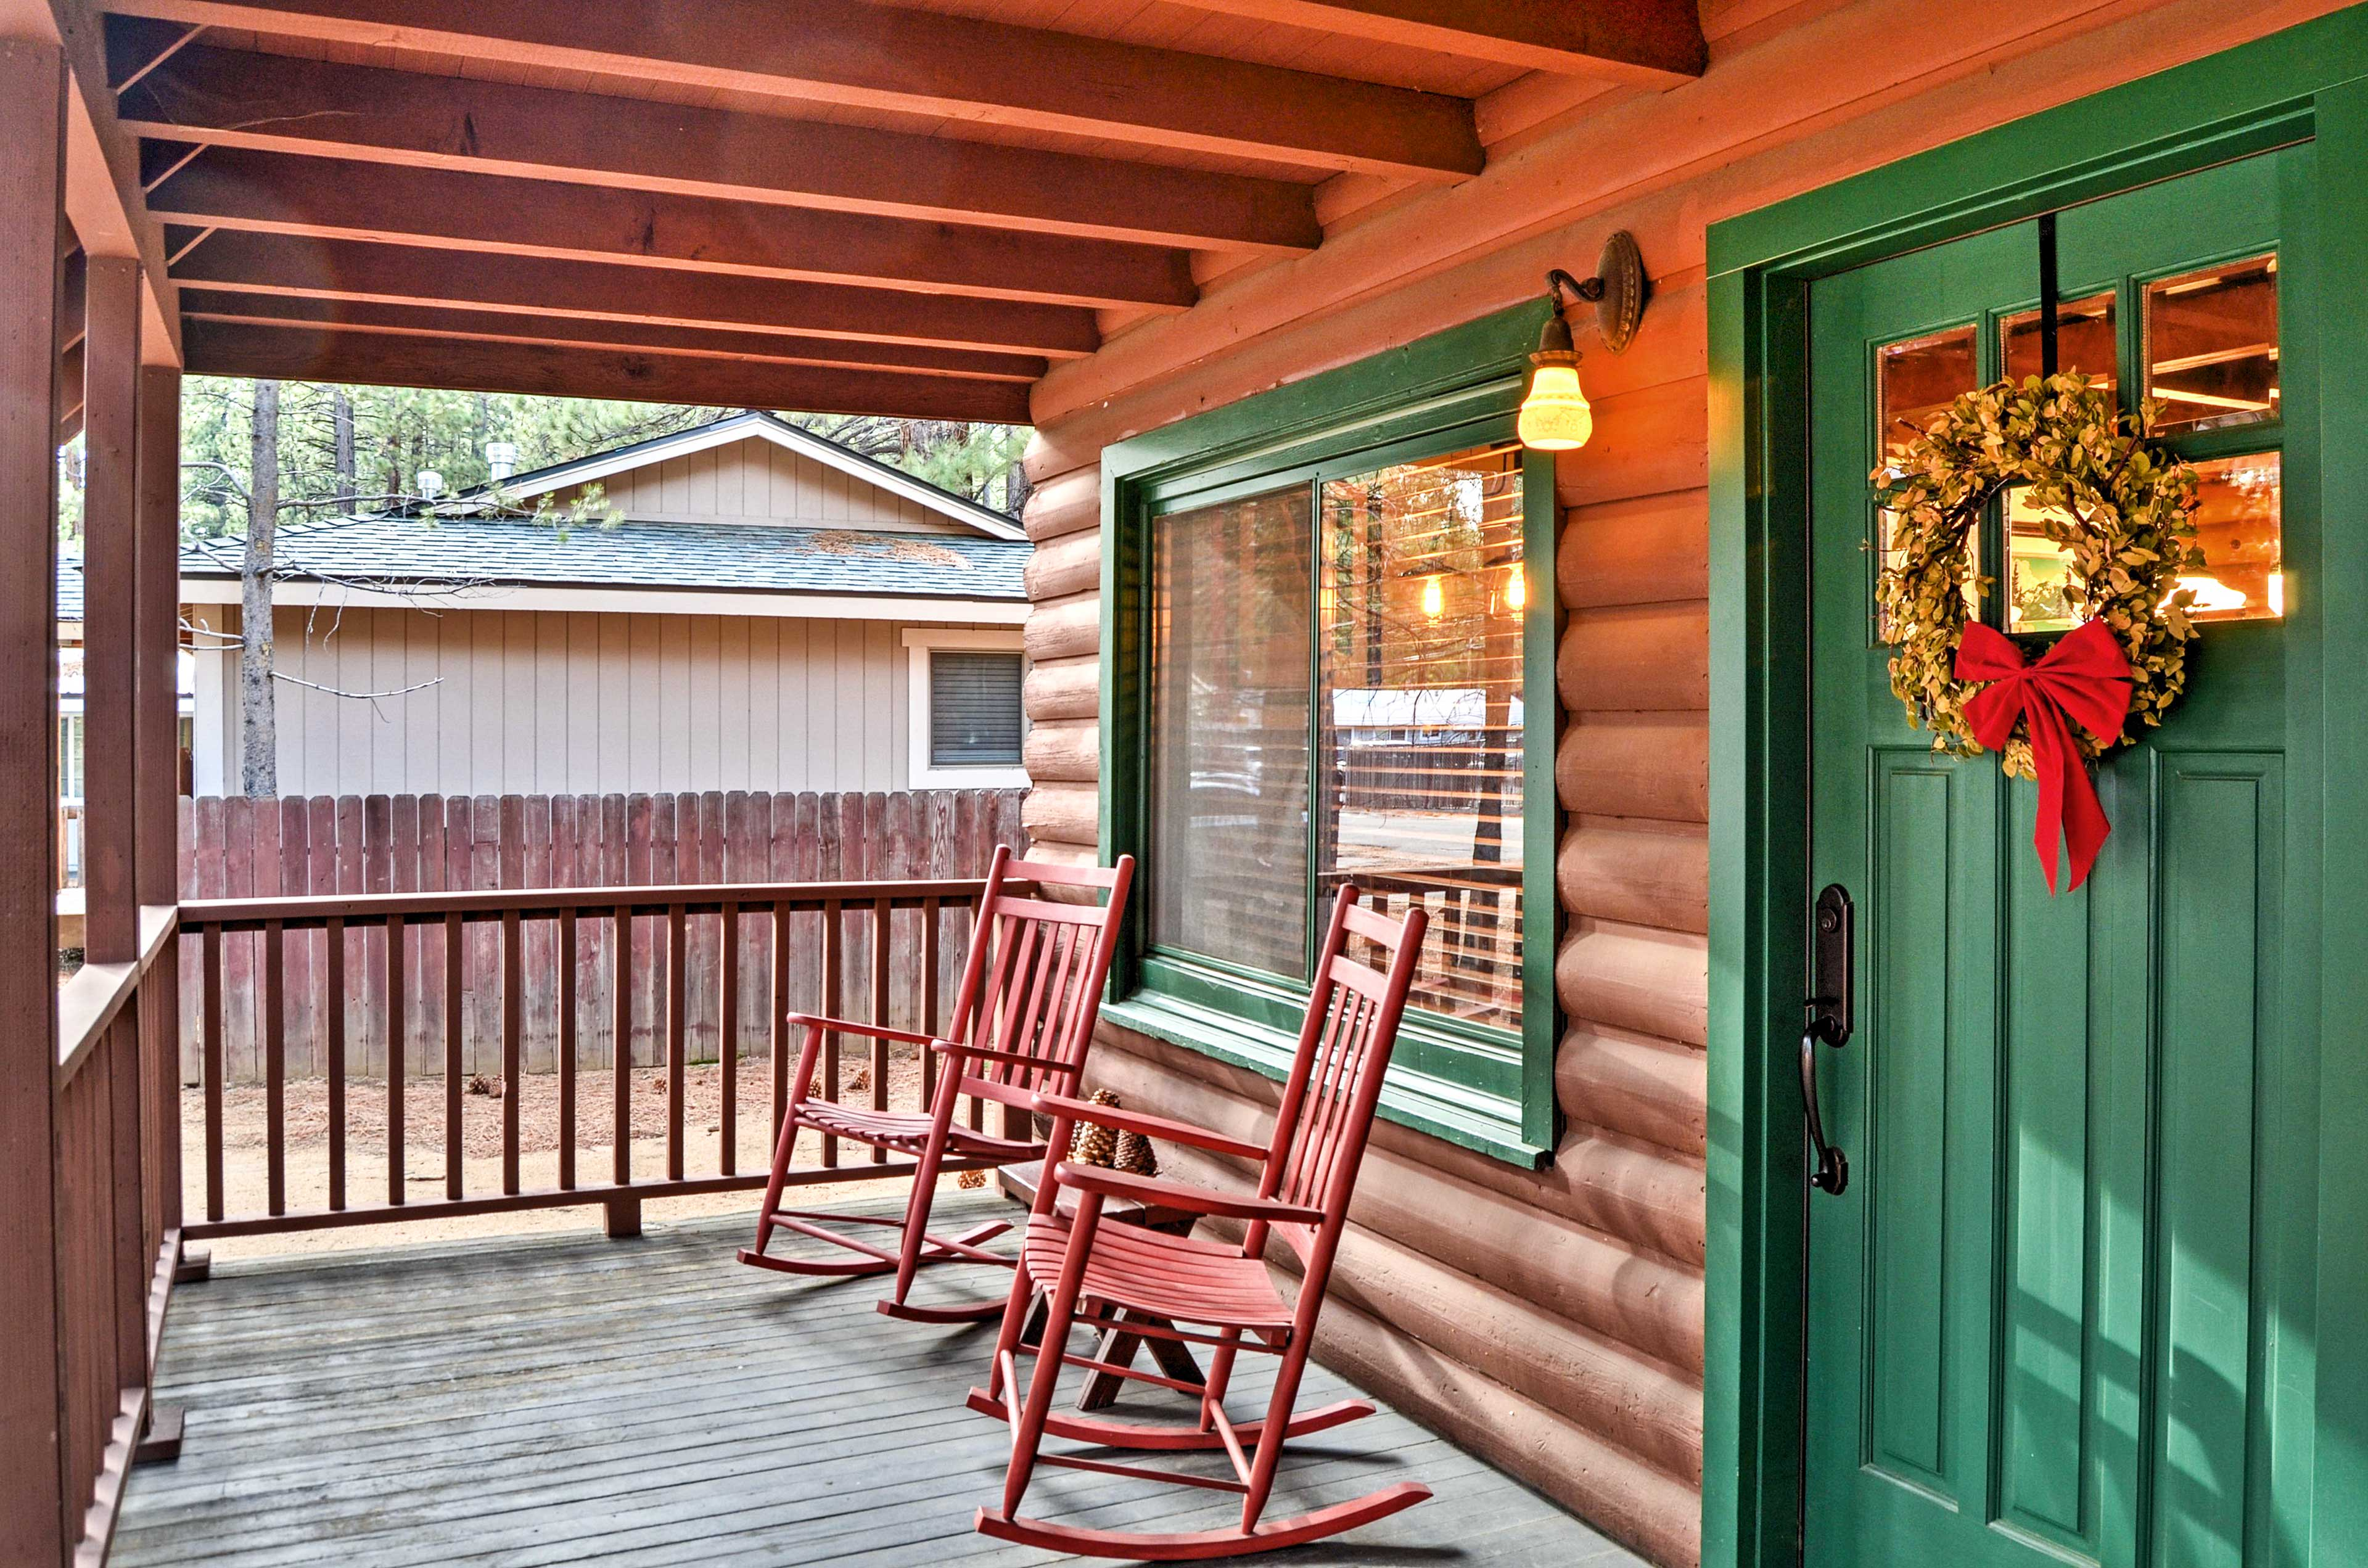 Sip your morning coffee in one of the cute rocking chairs on the porch.